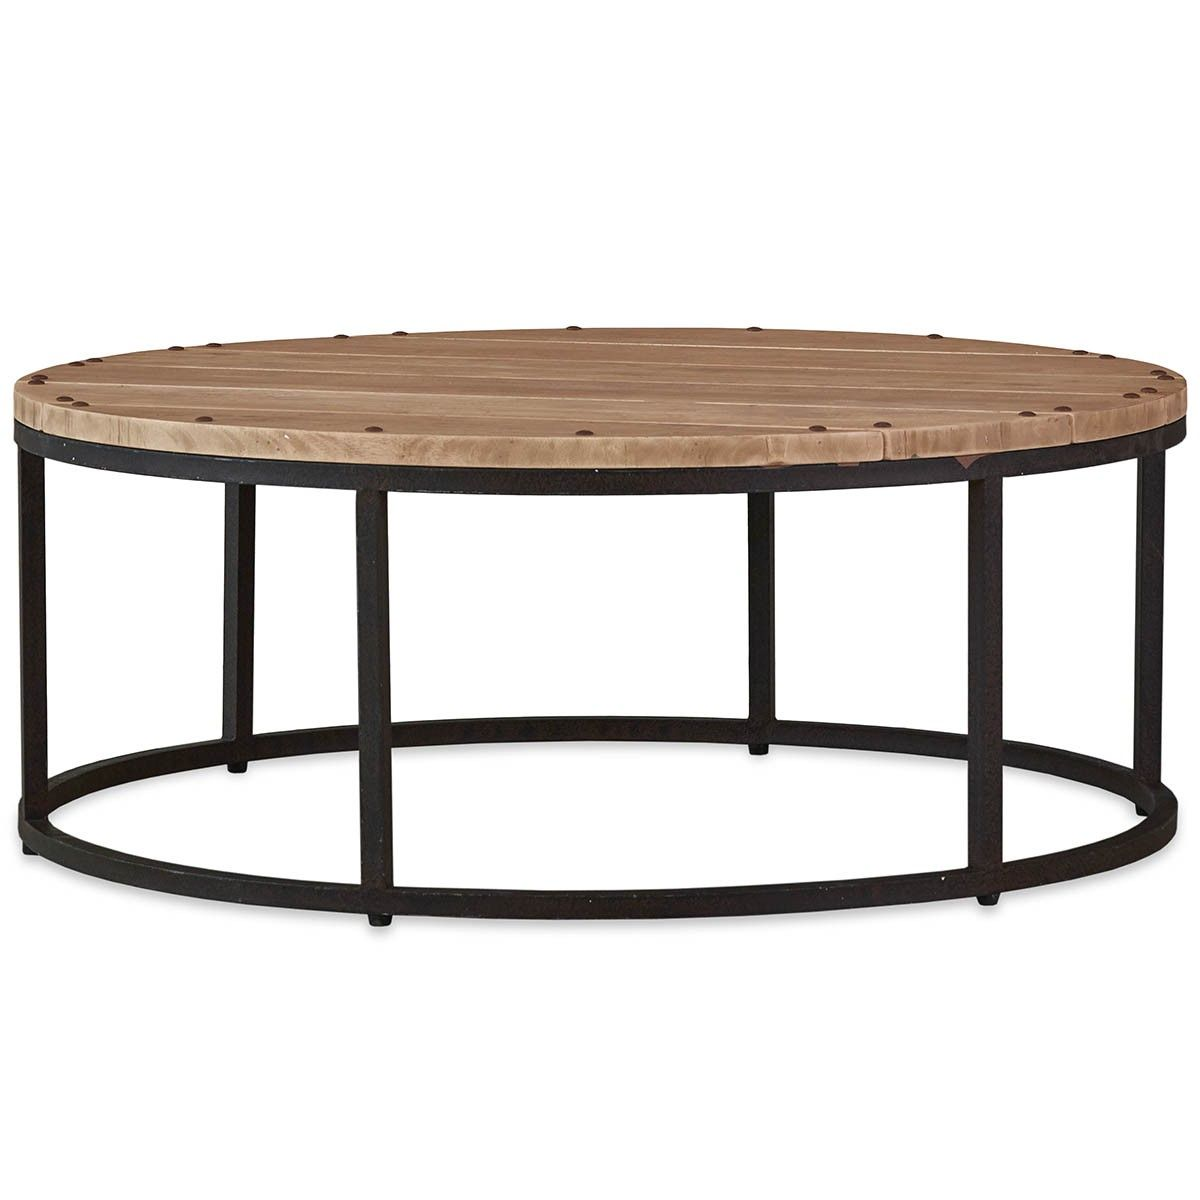 Urban Round Coffee Table 4 Round Coffee Table Coffee Table Wood Coffe Table [ 1200 x 1200 Pixel ]